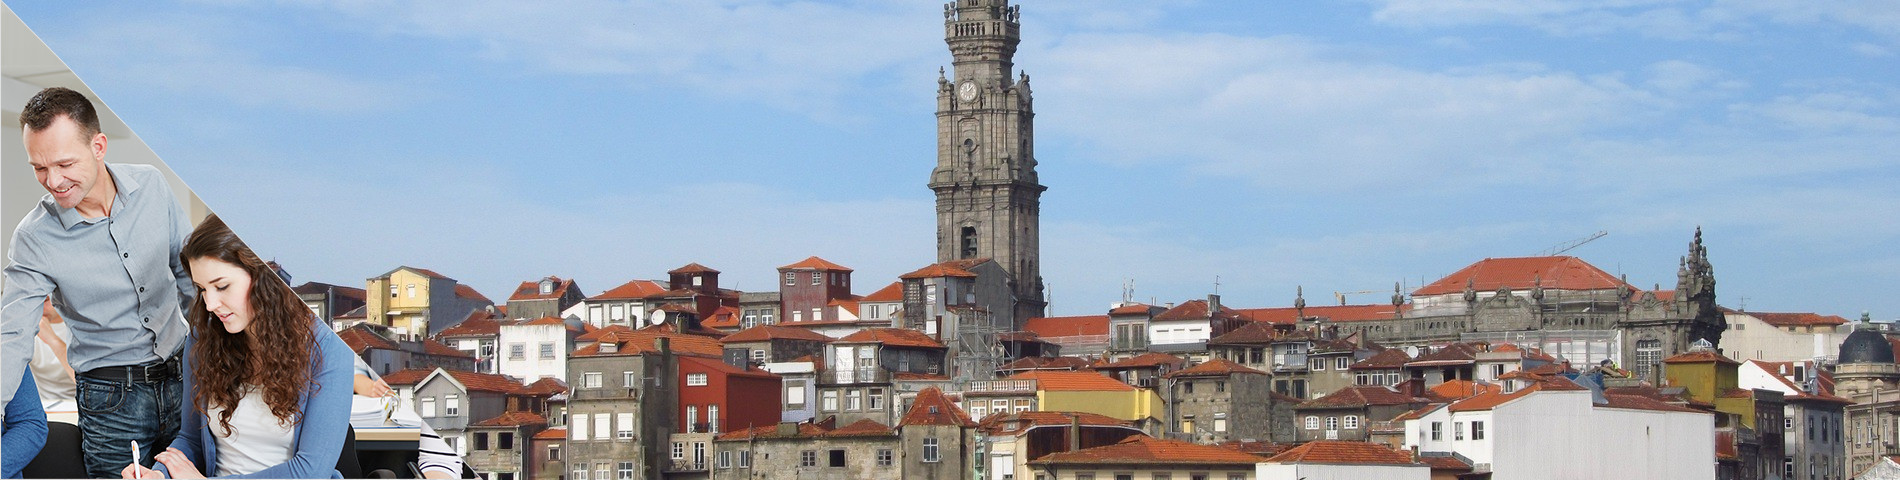 Porto - Combi: Group+Indiv